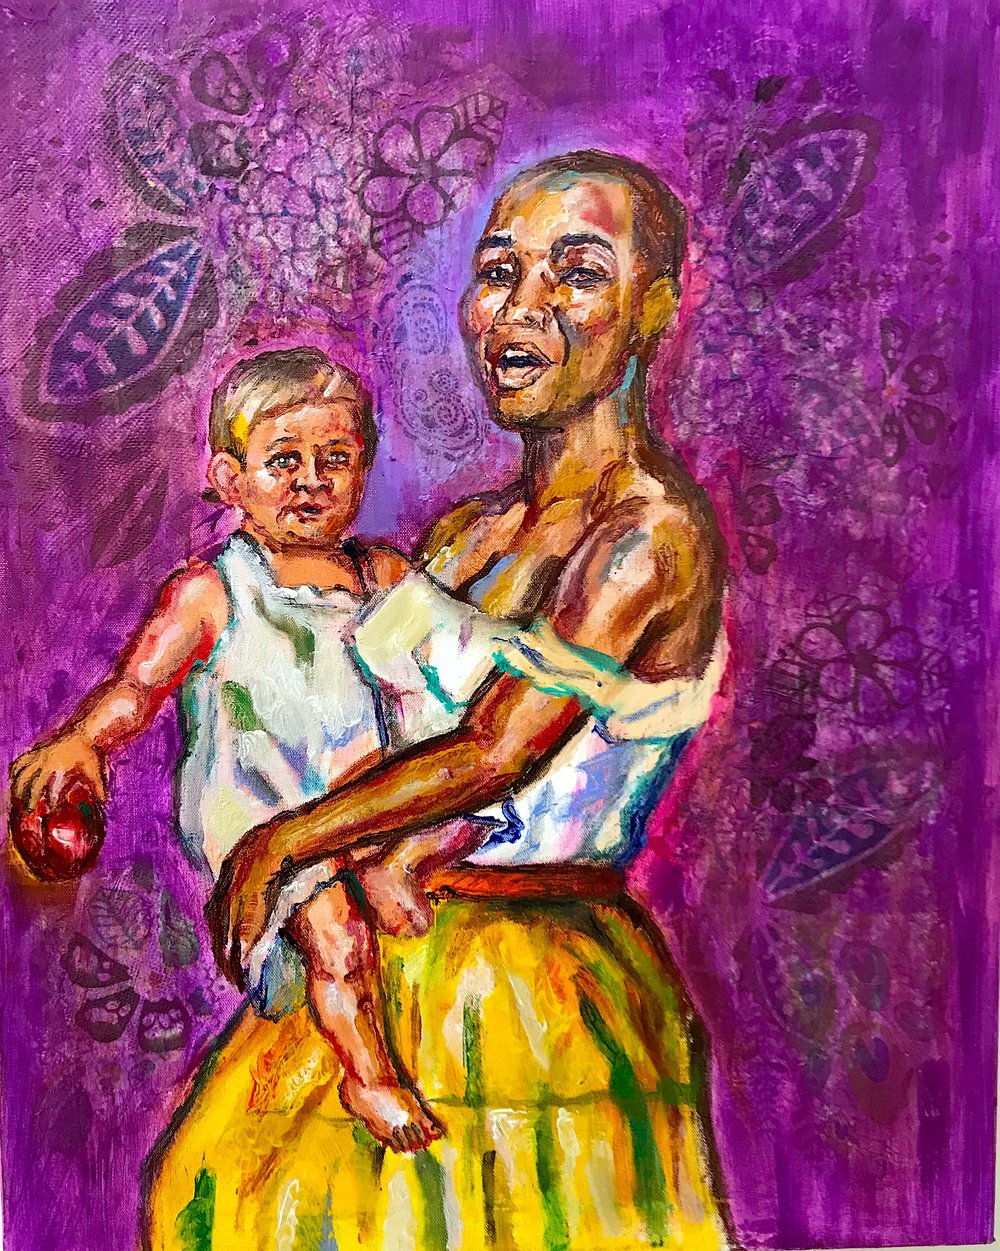 """Woman with Child or Composition in Yellow and Purple"", 2018"